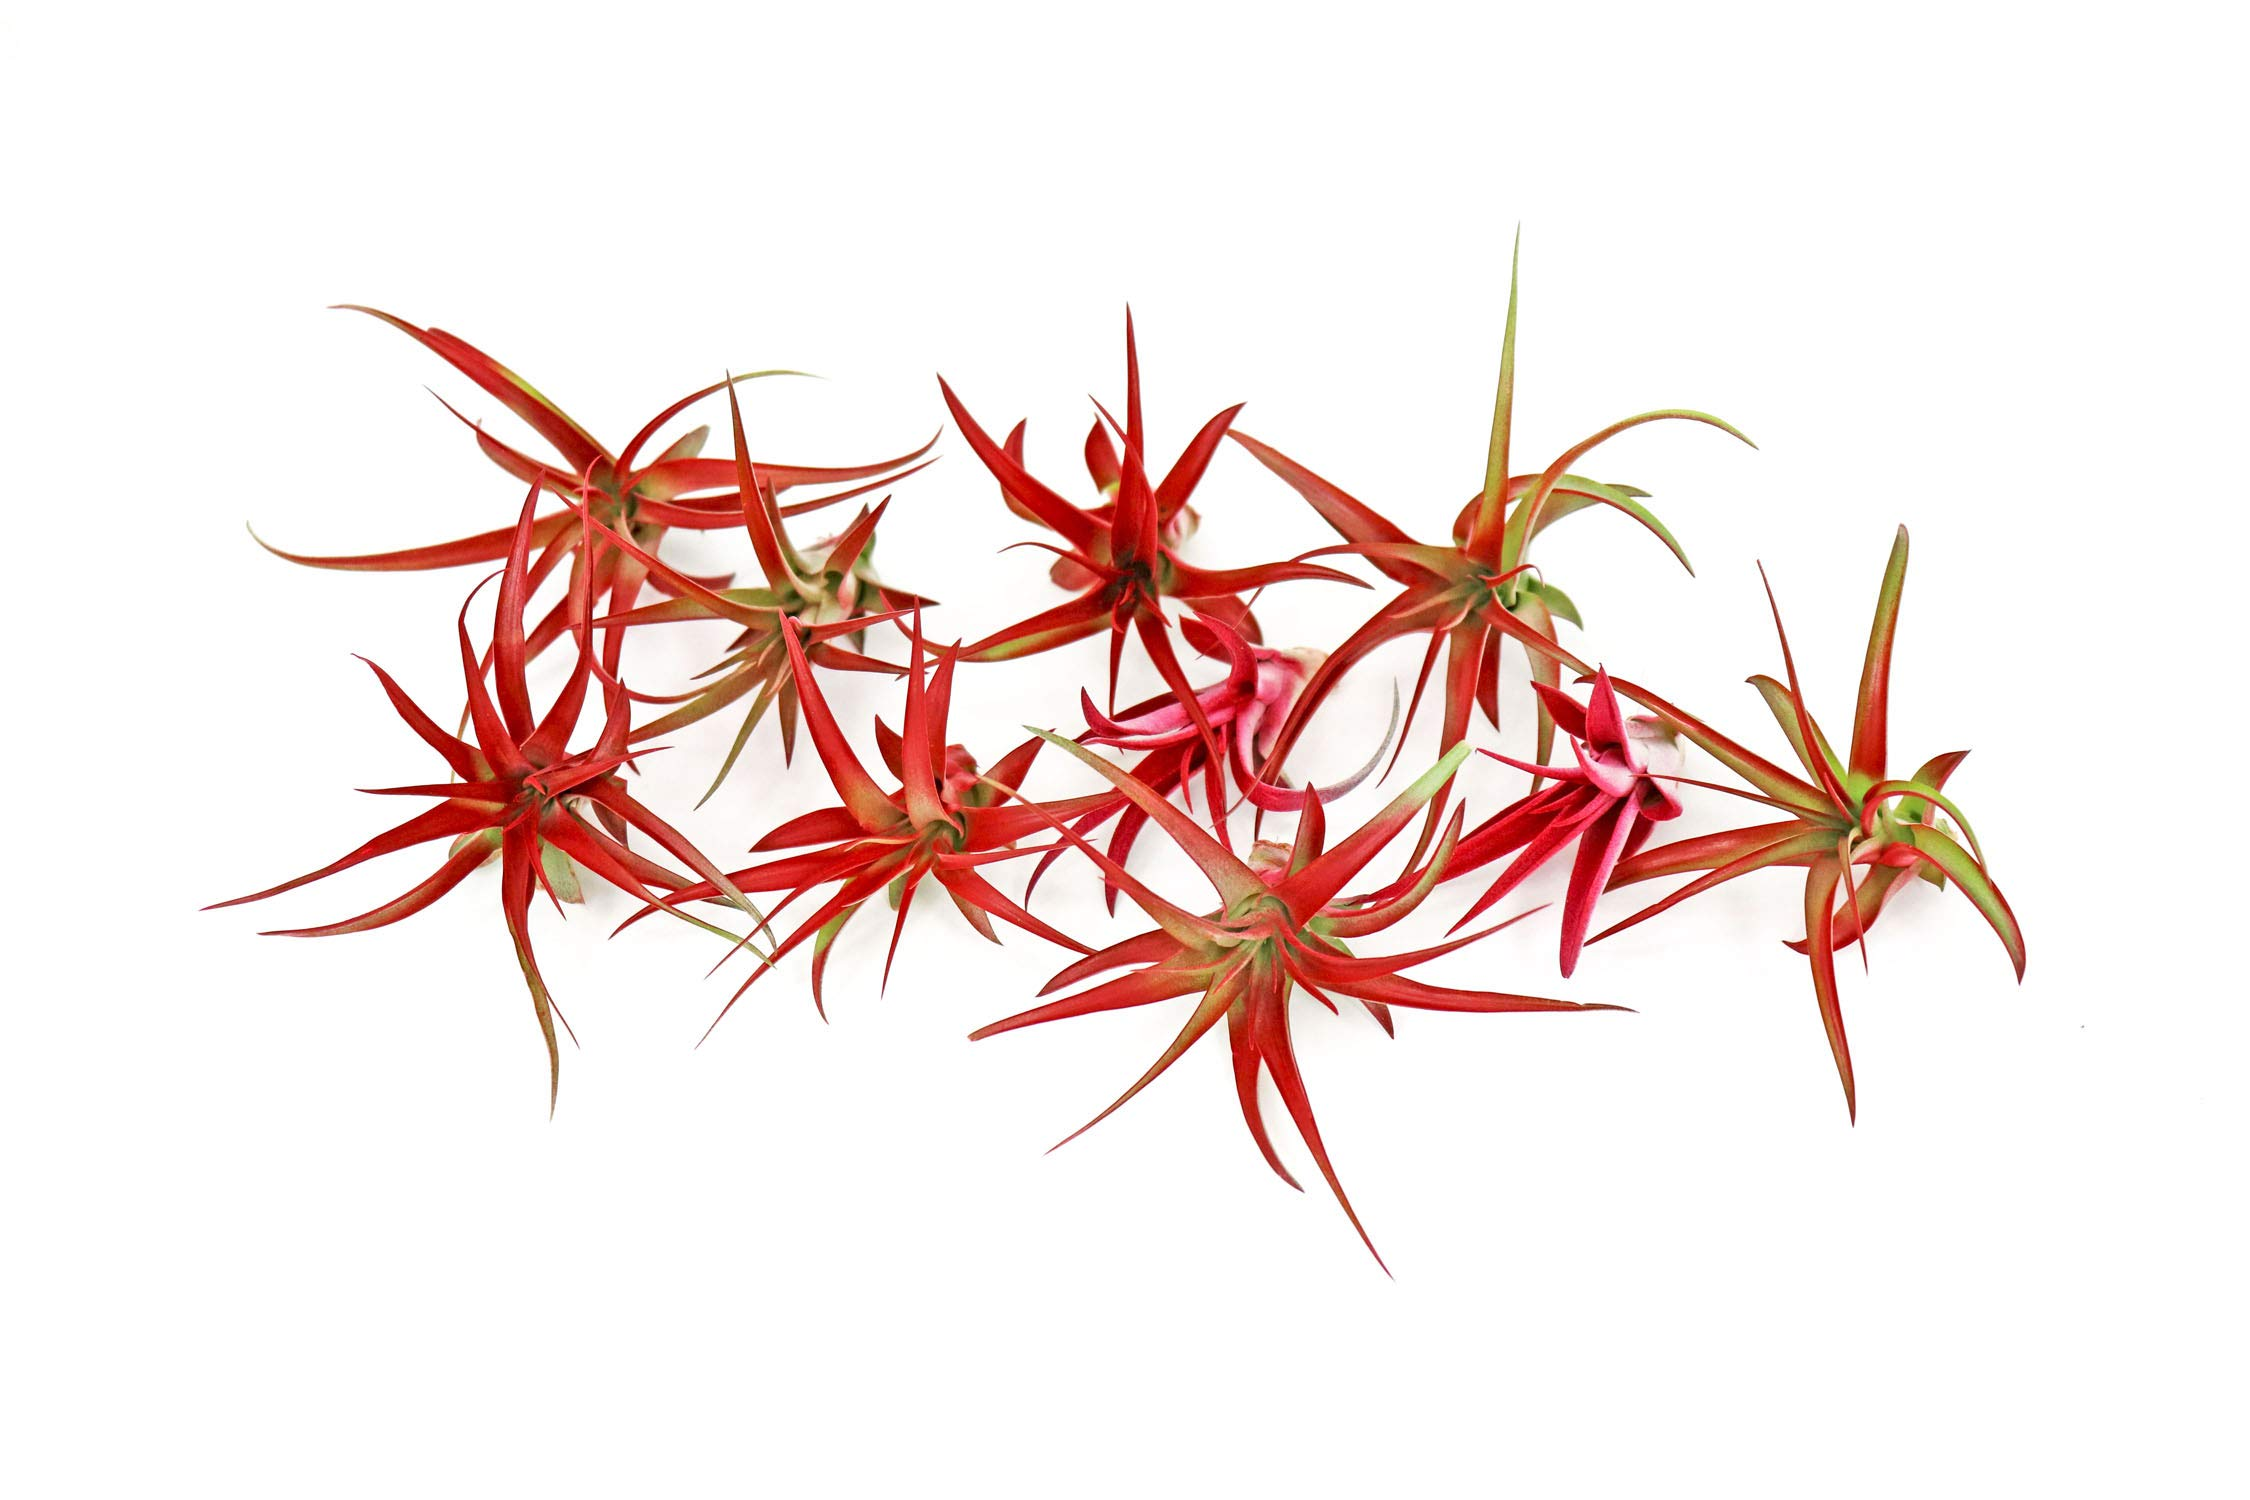 10 Live Air Plants | Bright Red Tillandsia Air Plant Pack | Colorful Indoor Plants | Real Houseplants | Easy Terrarium Decor Kit by Plants for Pets by Plants for Pets (Image #2)